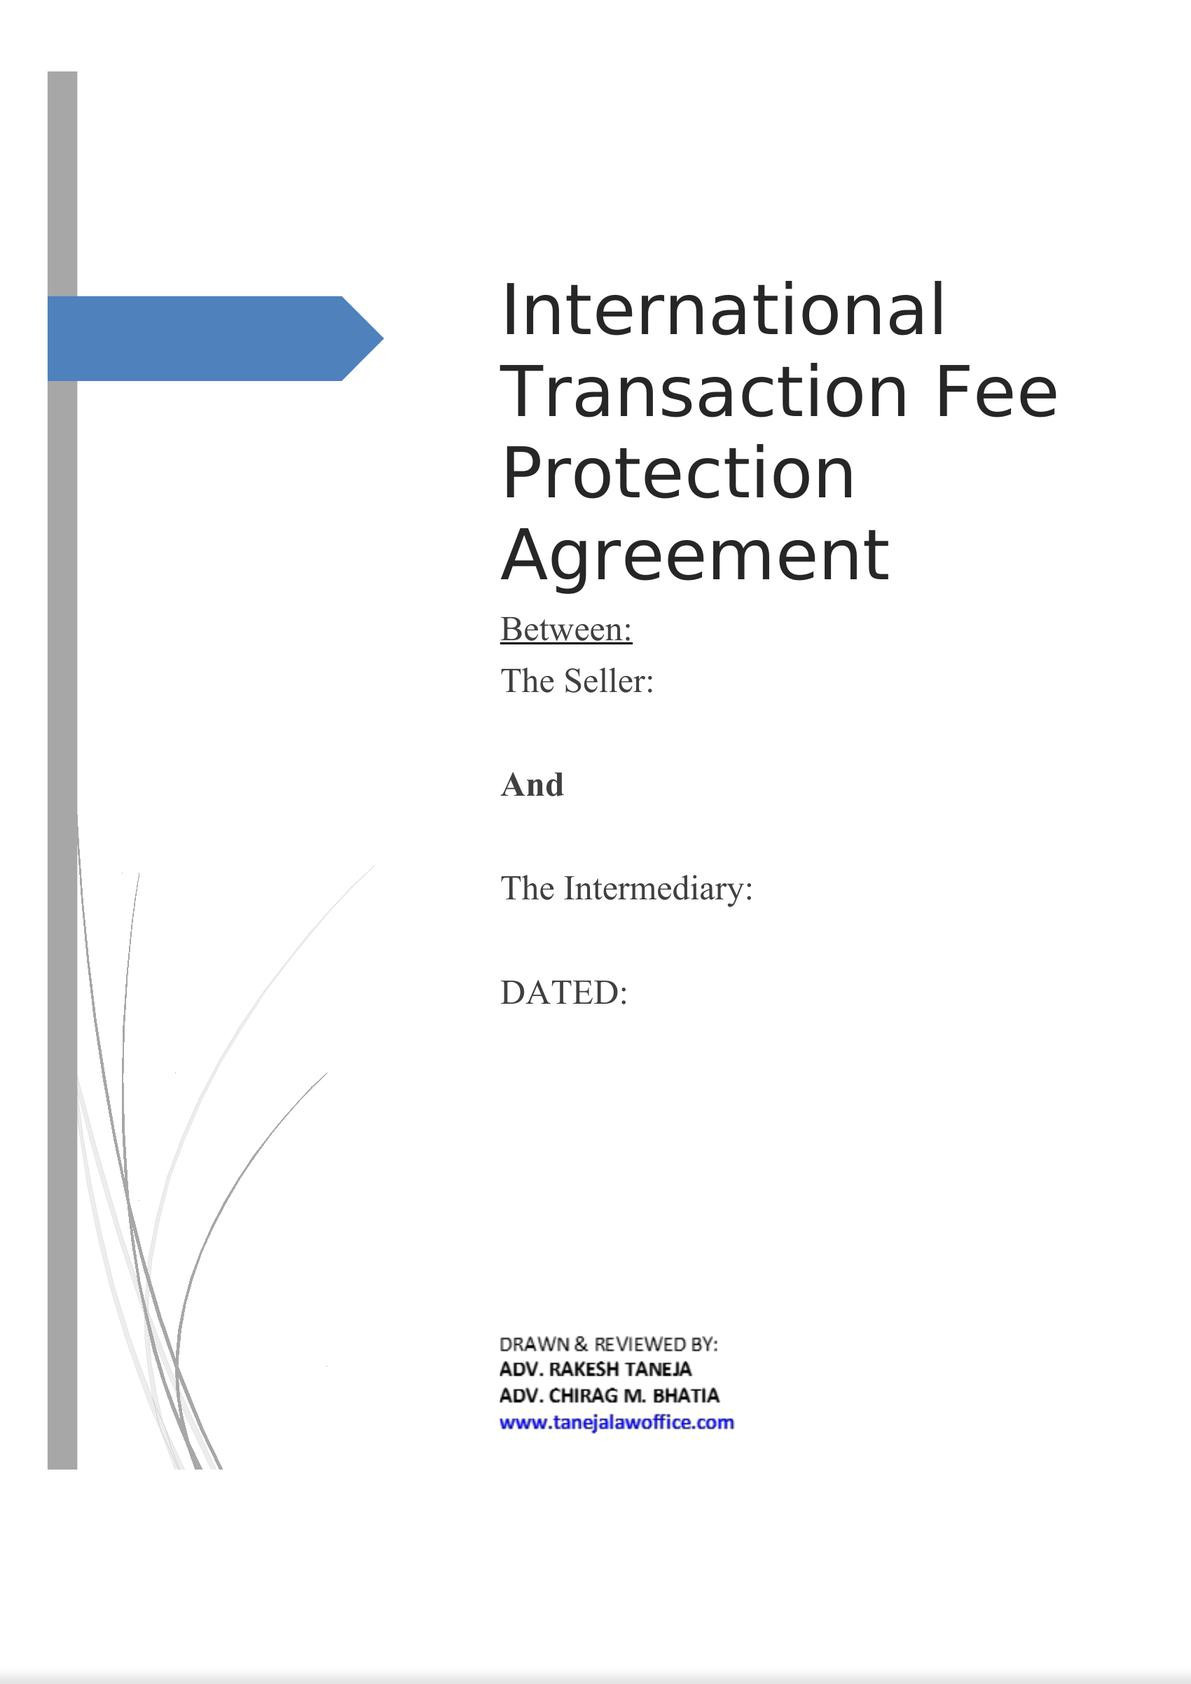 International Transaction Fee Protection Agreement-0